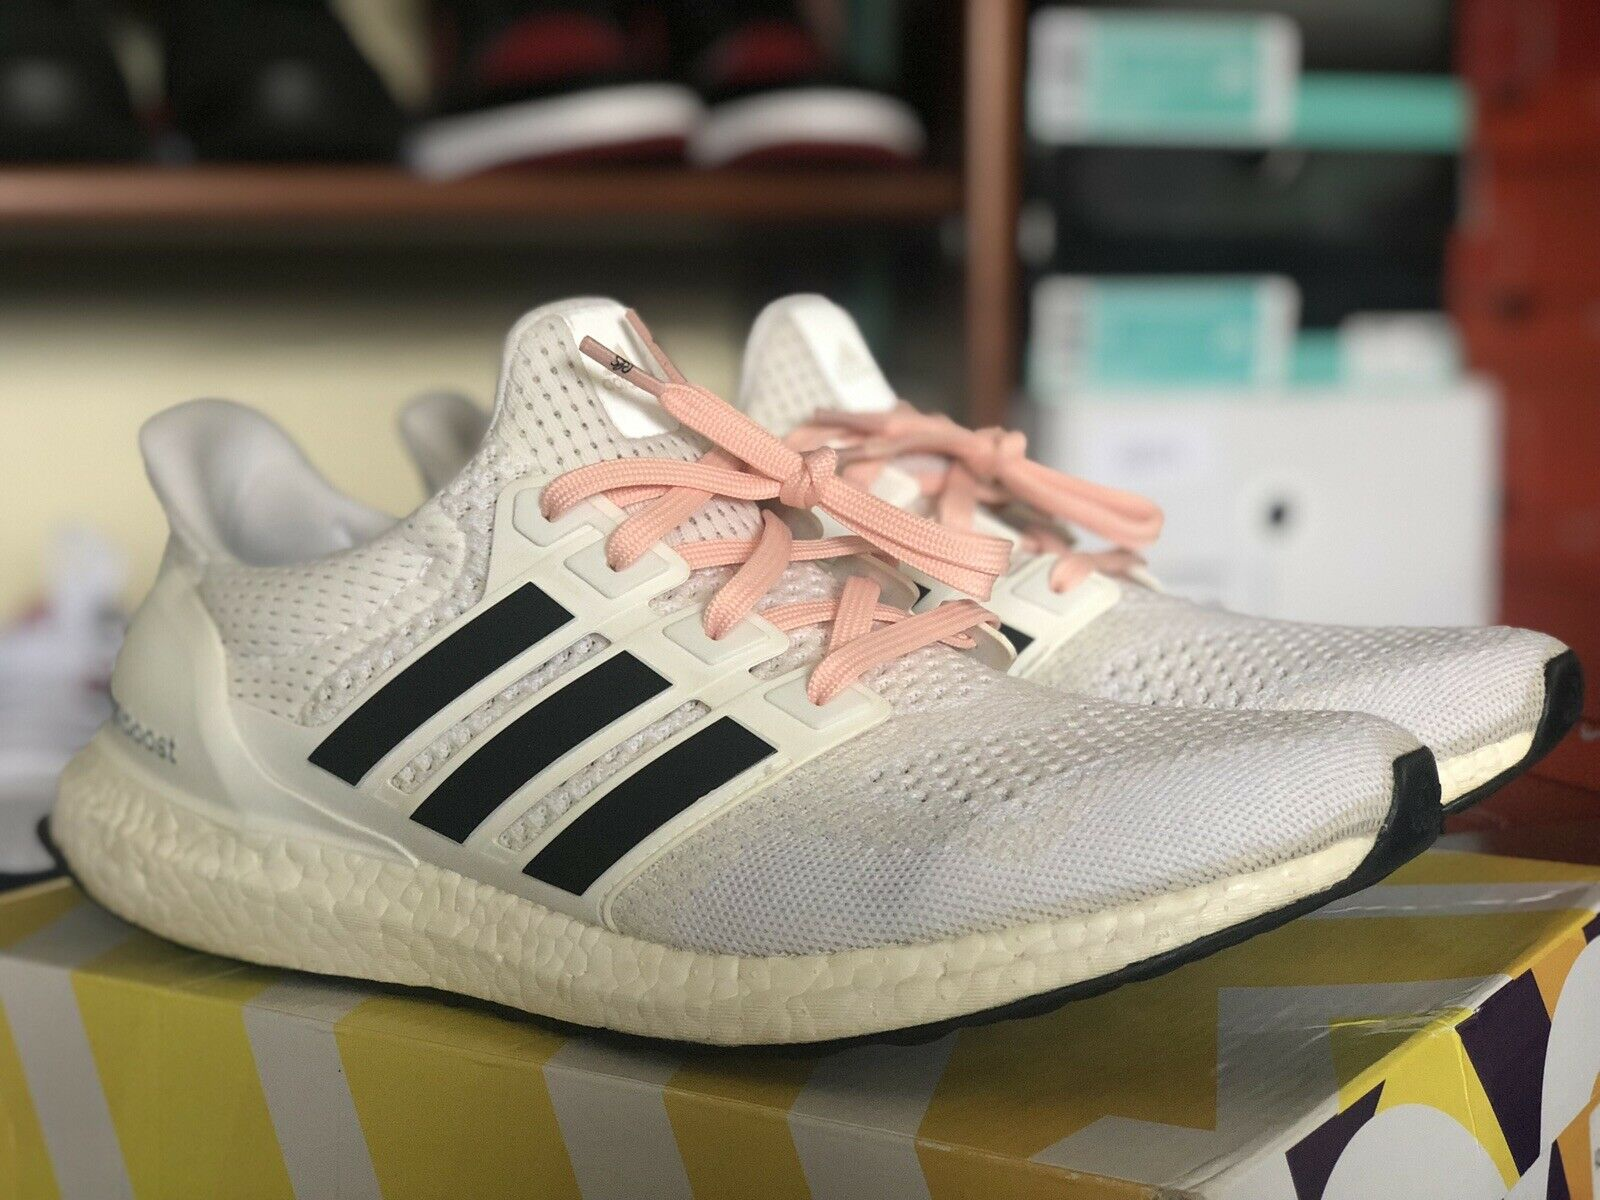 Adidas Ultra Boost 1.0 Triple White 11 Creme Solar Yellow Red orange Olive SNS 2